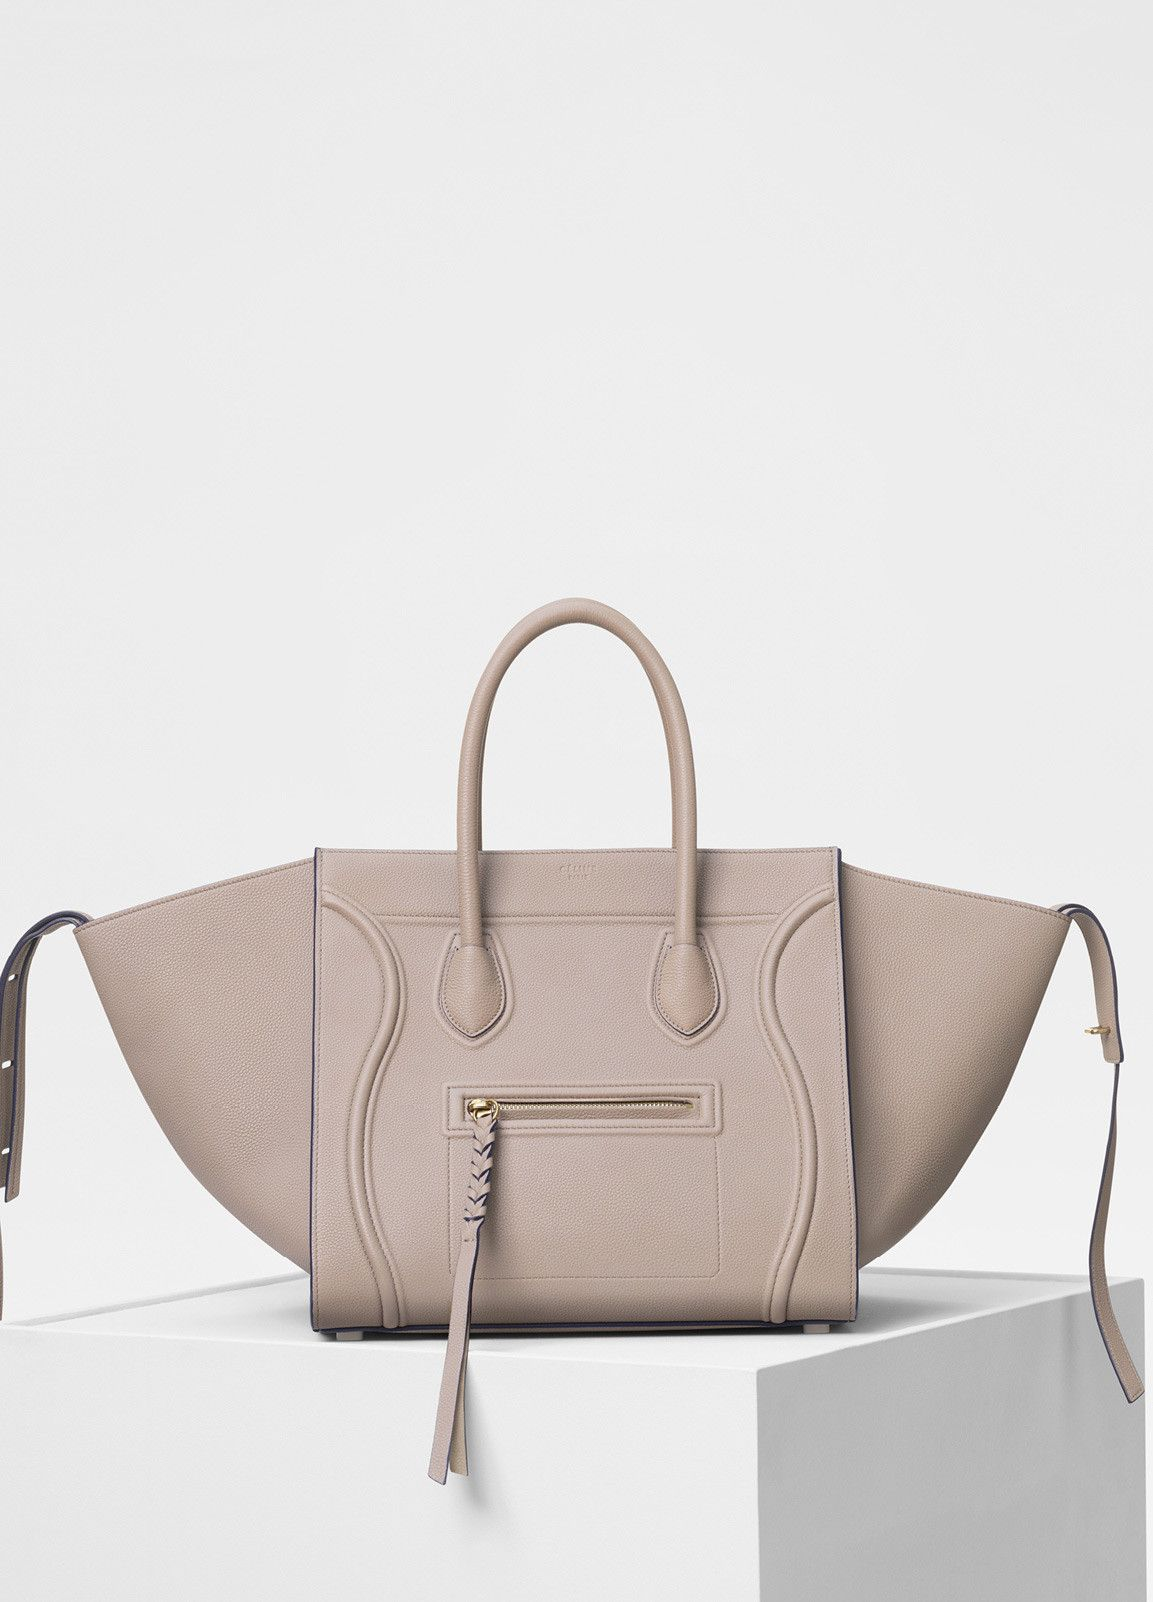 Céline - Medium Luggage Phantom bag  580c4f632570d